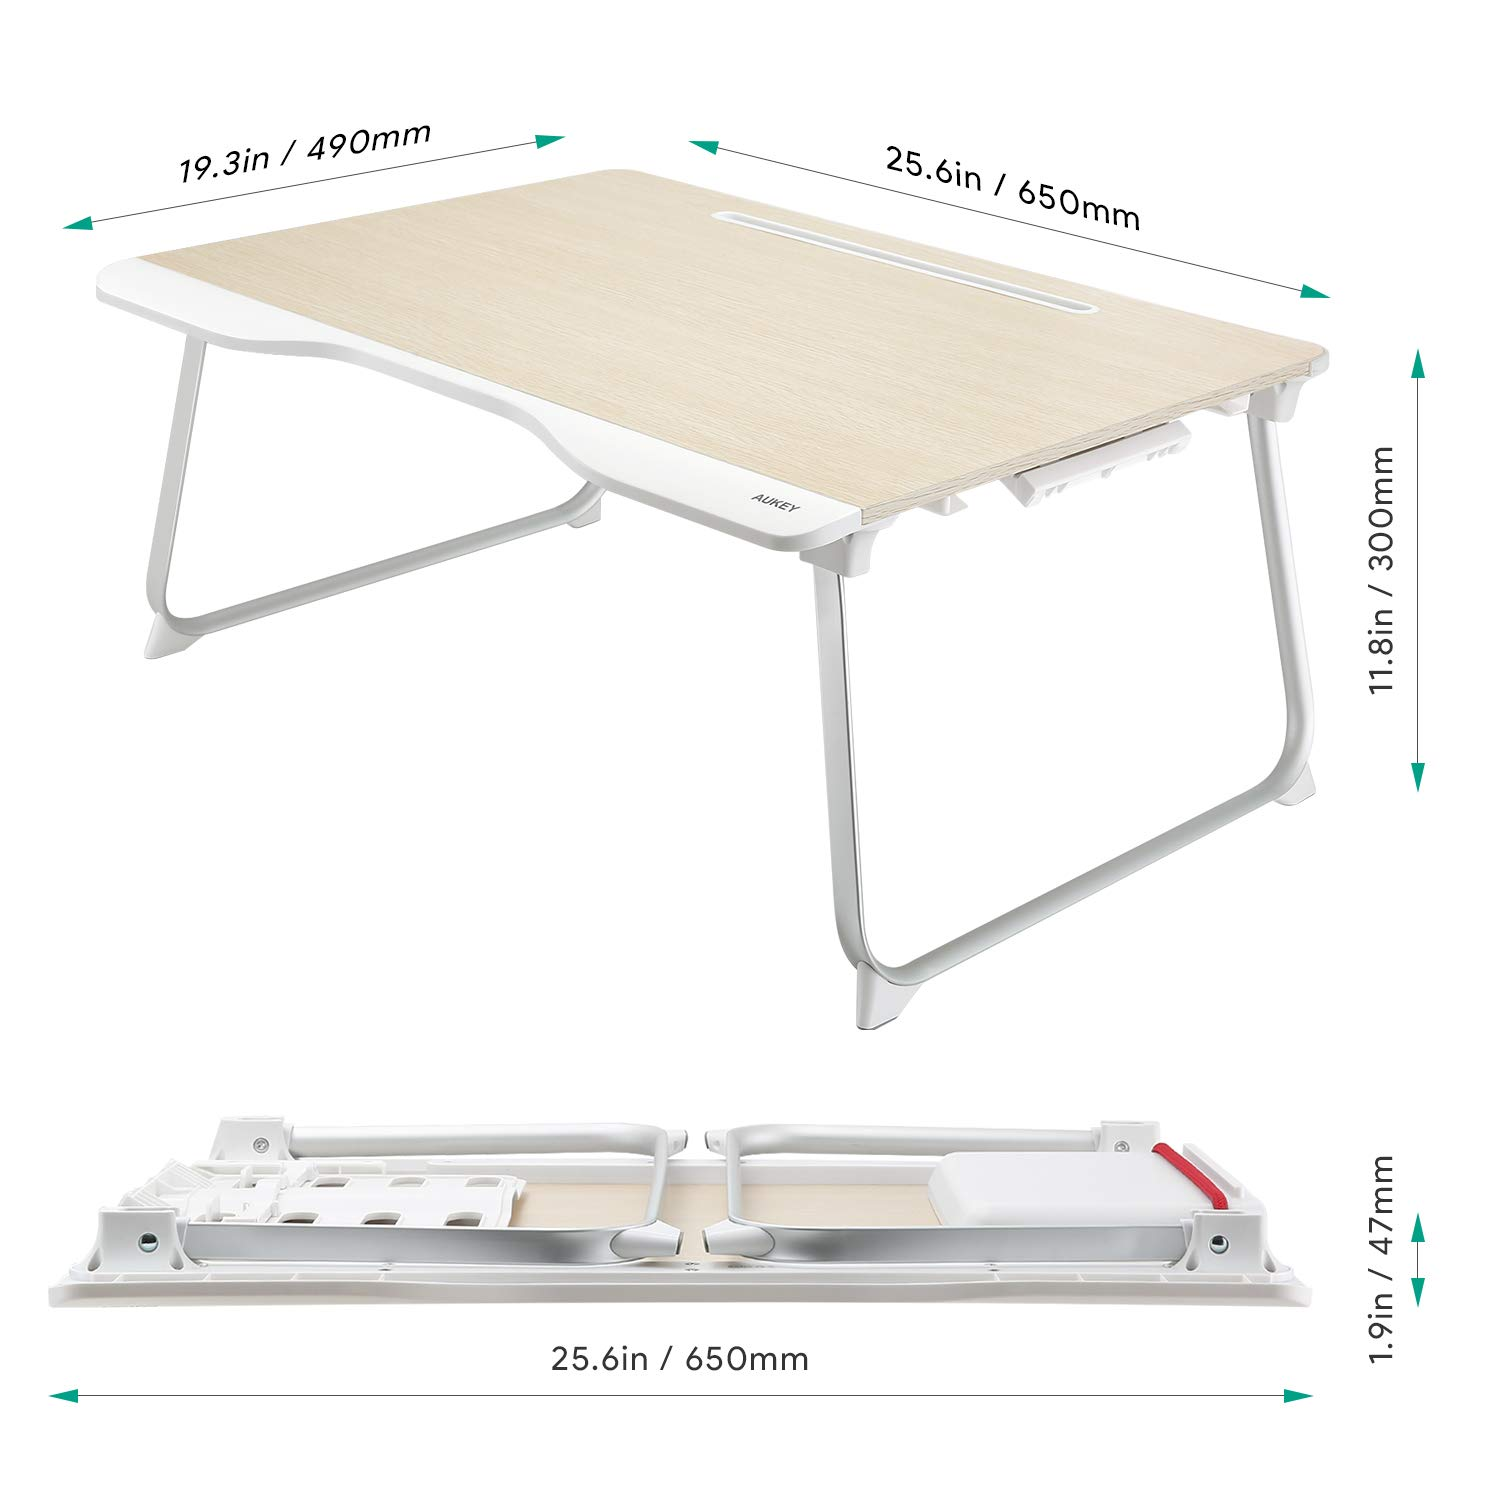 AUKEY Laptop Bed Table (Large Size) Foldable Portable Laptop Stand with Aluminum Alloy Legs, Book Stand and Drawer for Reading, Writing, and Working by AUKEY (Image #7)